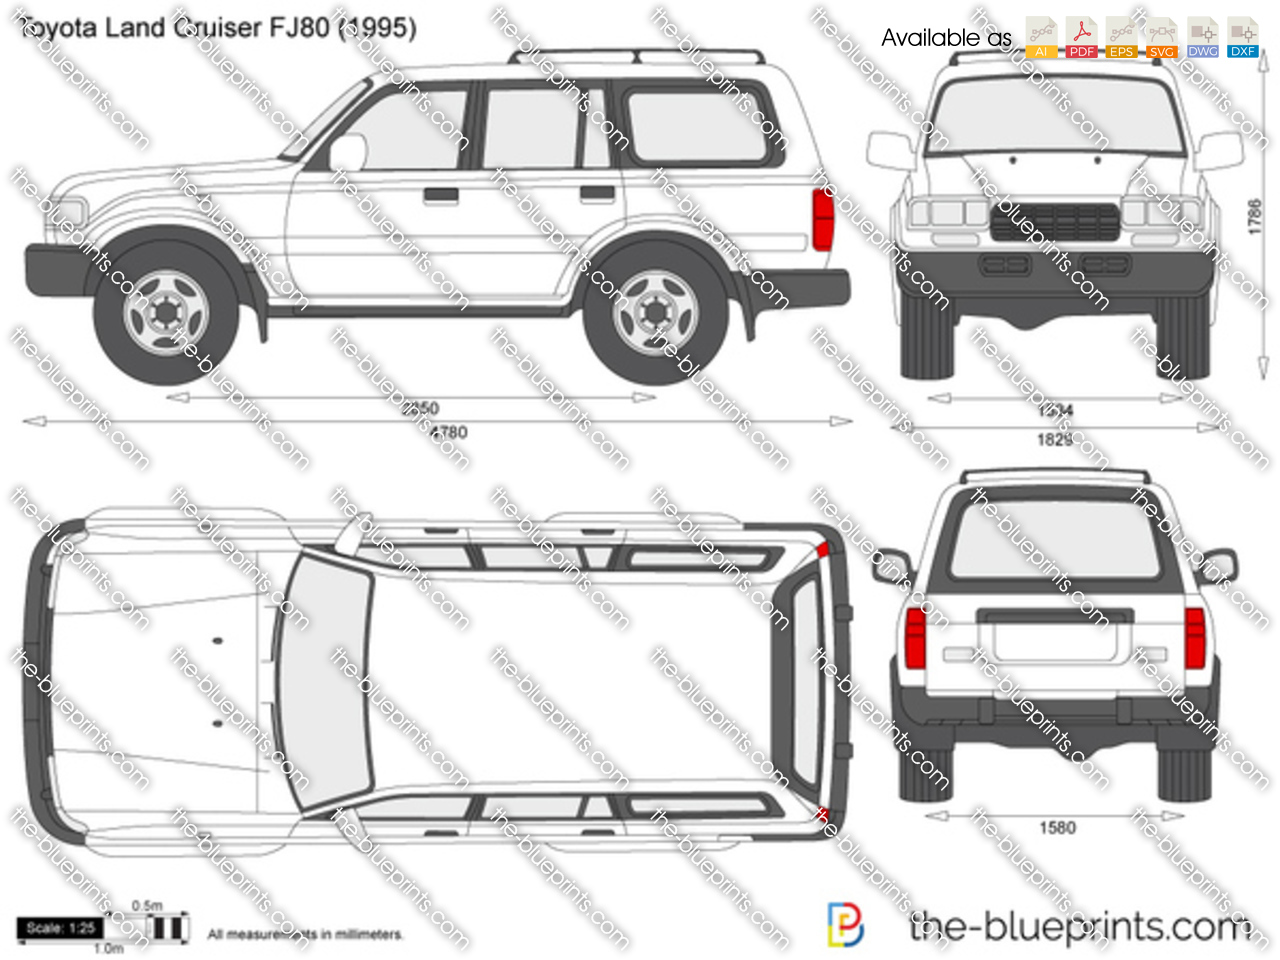 toyota land cruiser fj80 vector drawing